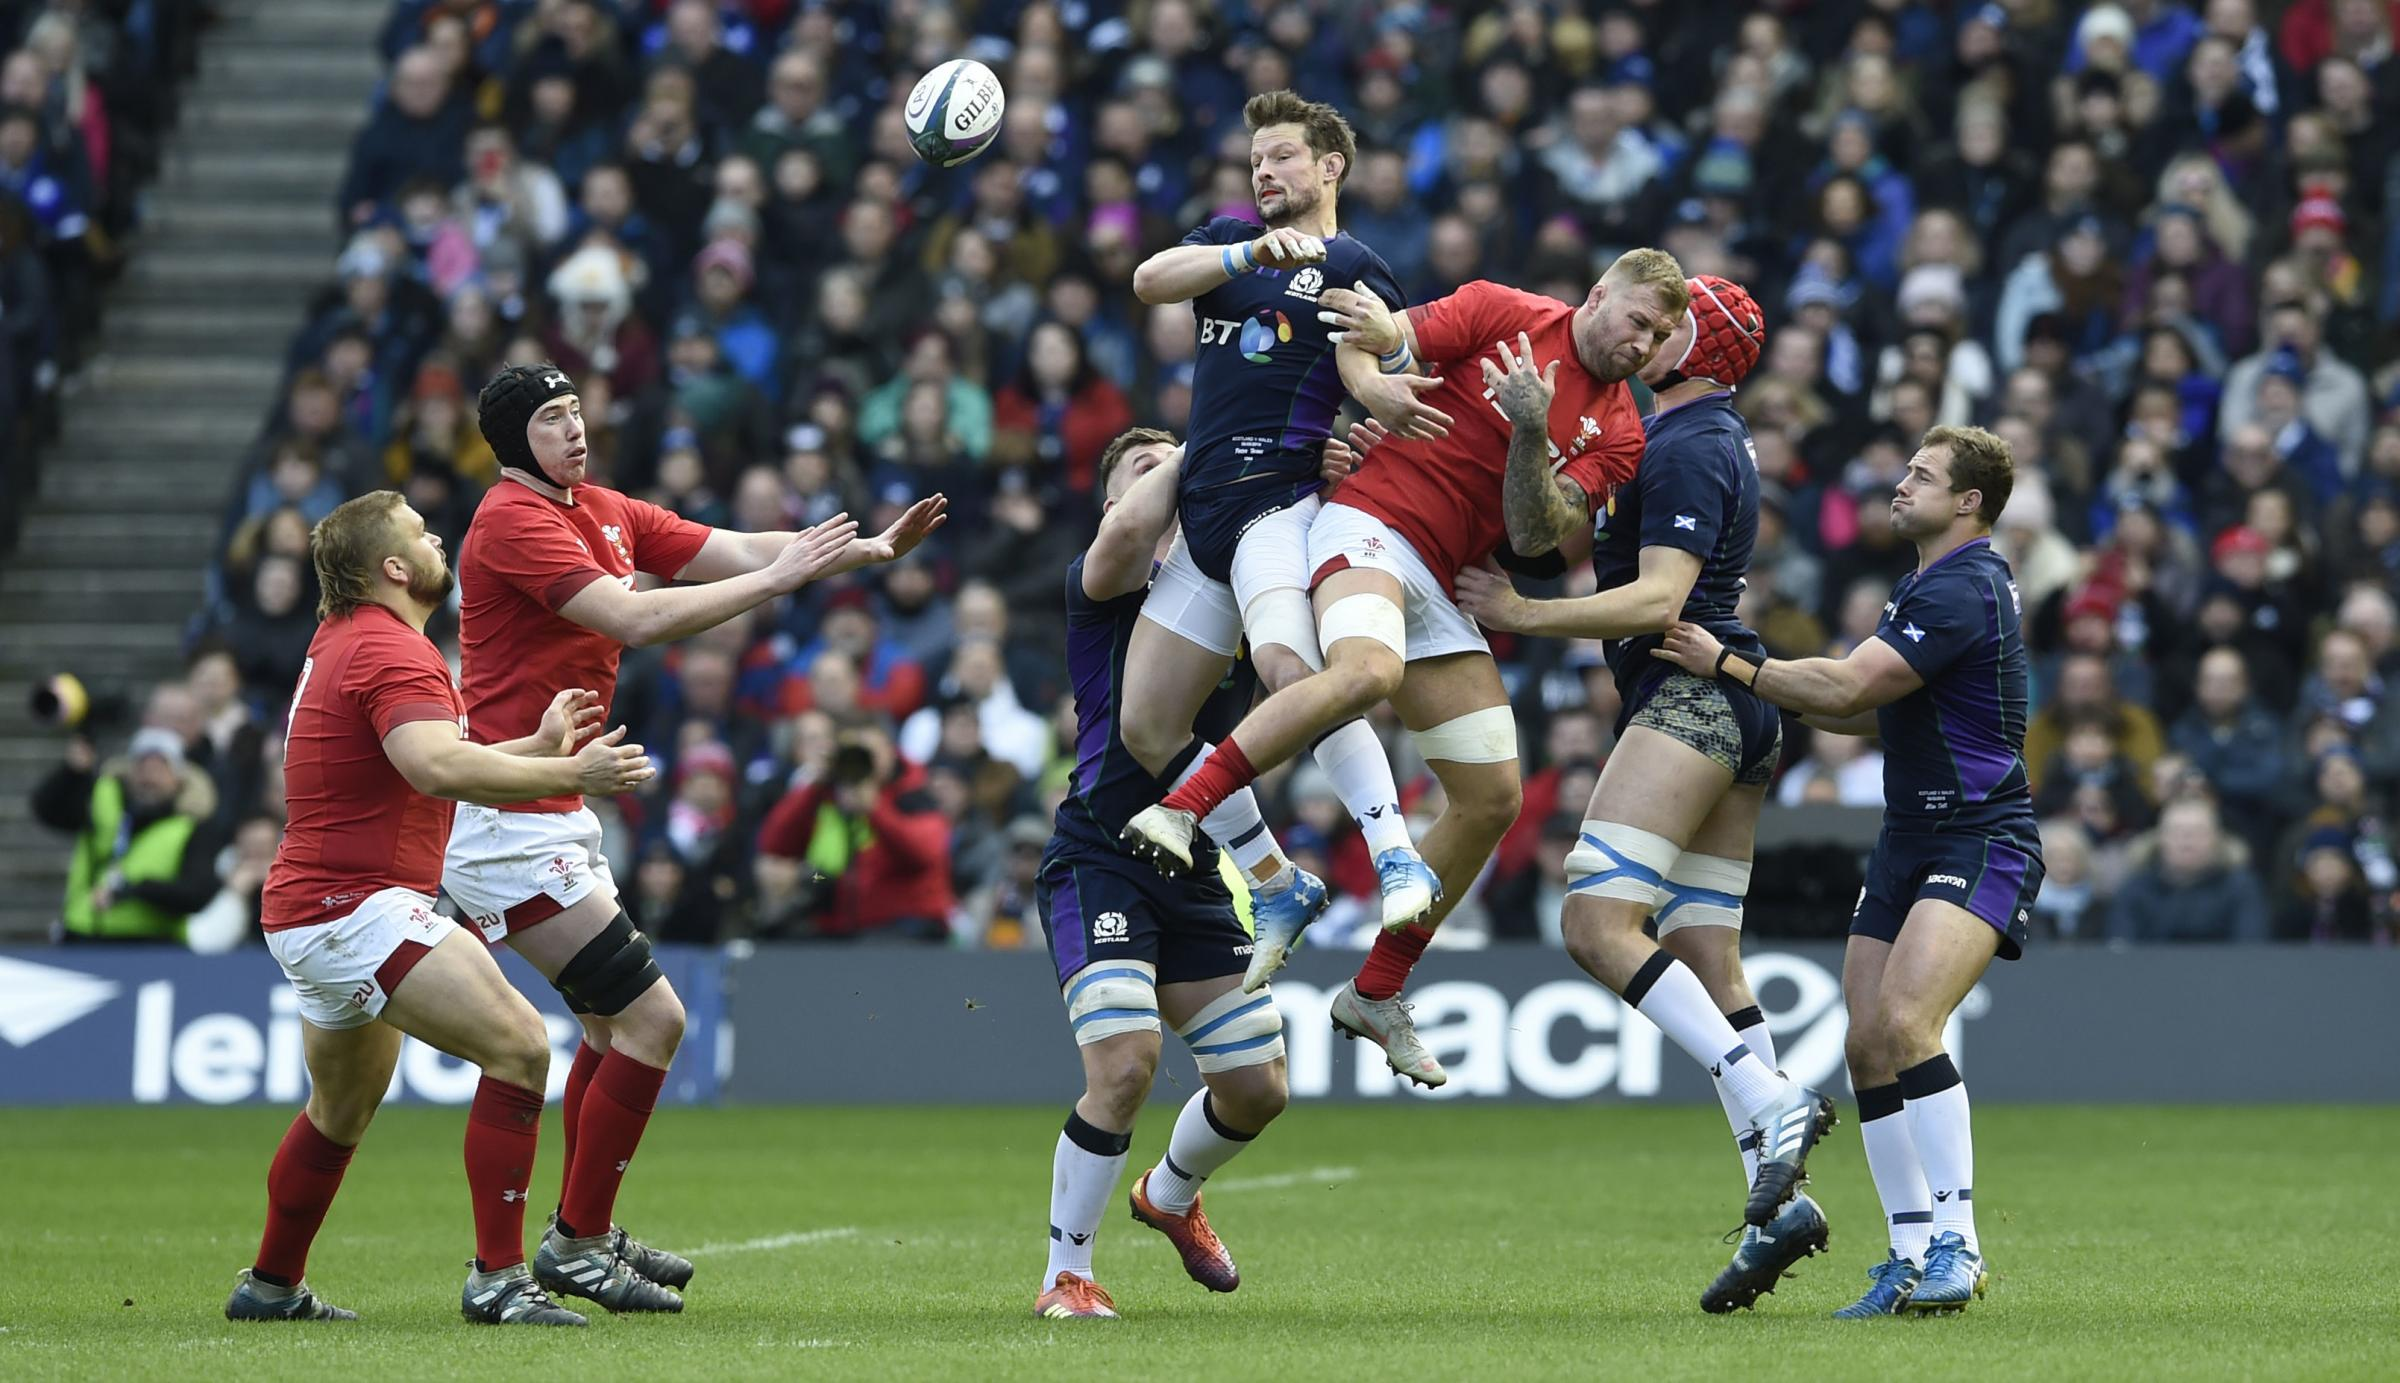 FLYING HIGH: Ross Moriarty goes up in the air in Edinburgh